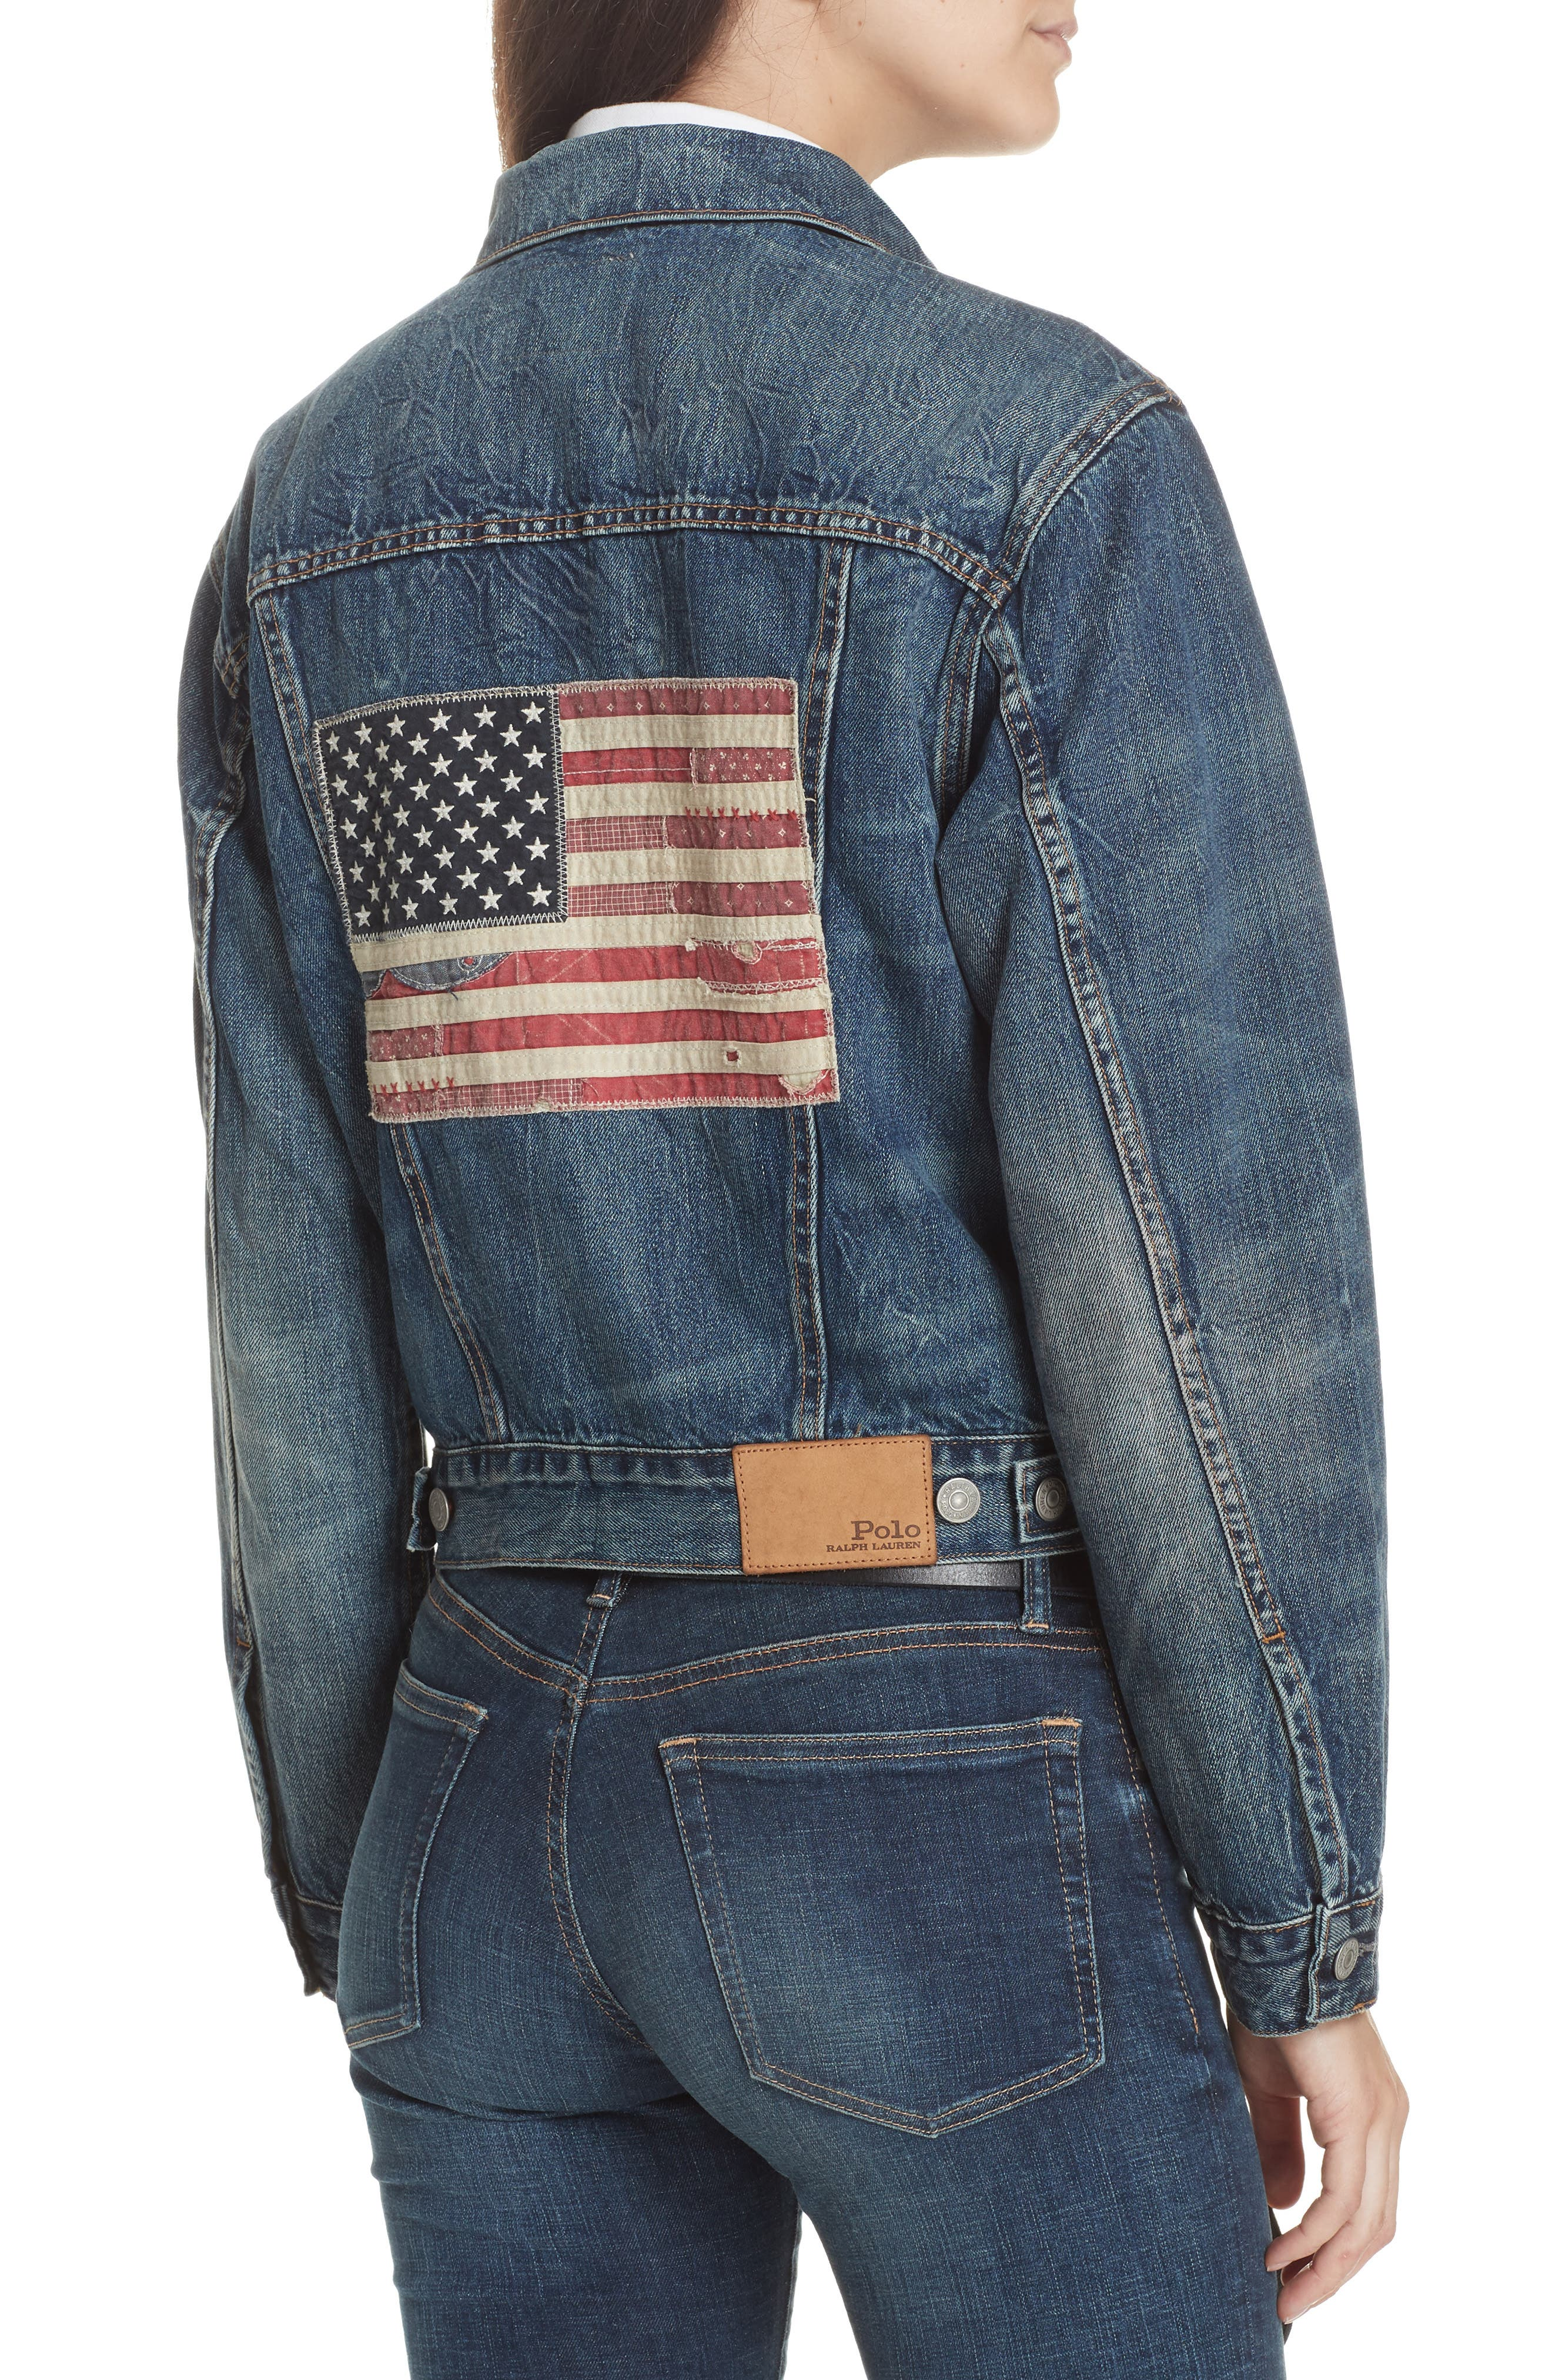 Flag Trucker Denim Jacket,                             Alternate thumbnail 2, color,                             DARK INDIGO